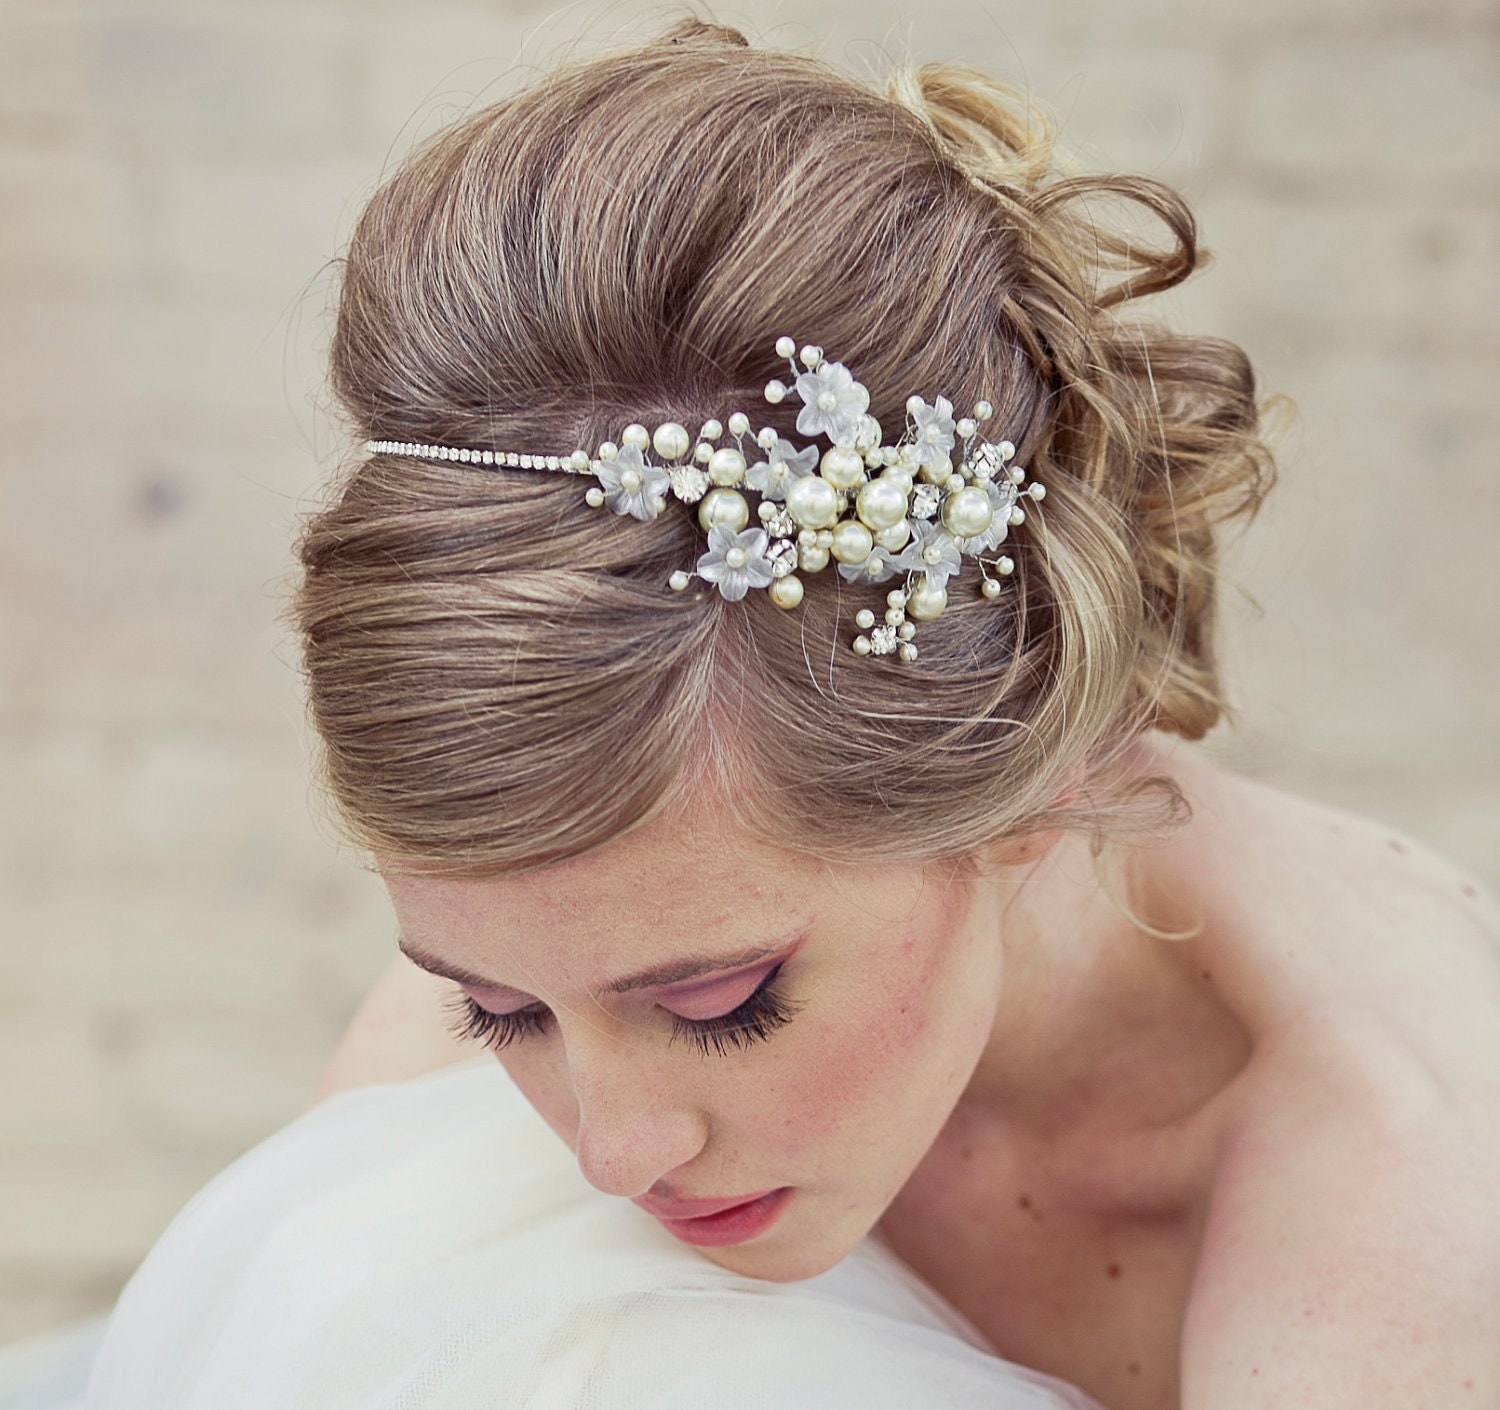 Wedding Hairstyle With Headband: Bridal Headband Rhinestone Wedding Tiara With Wired Flowers